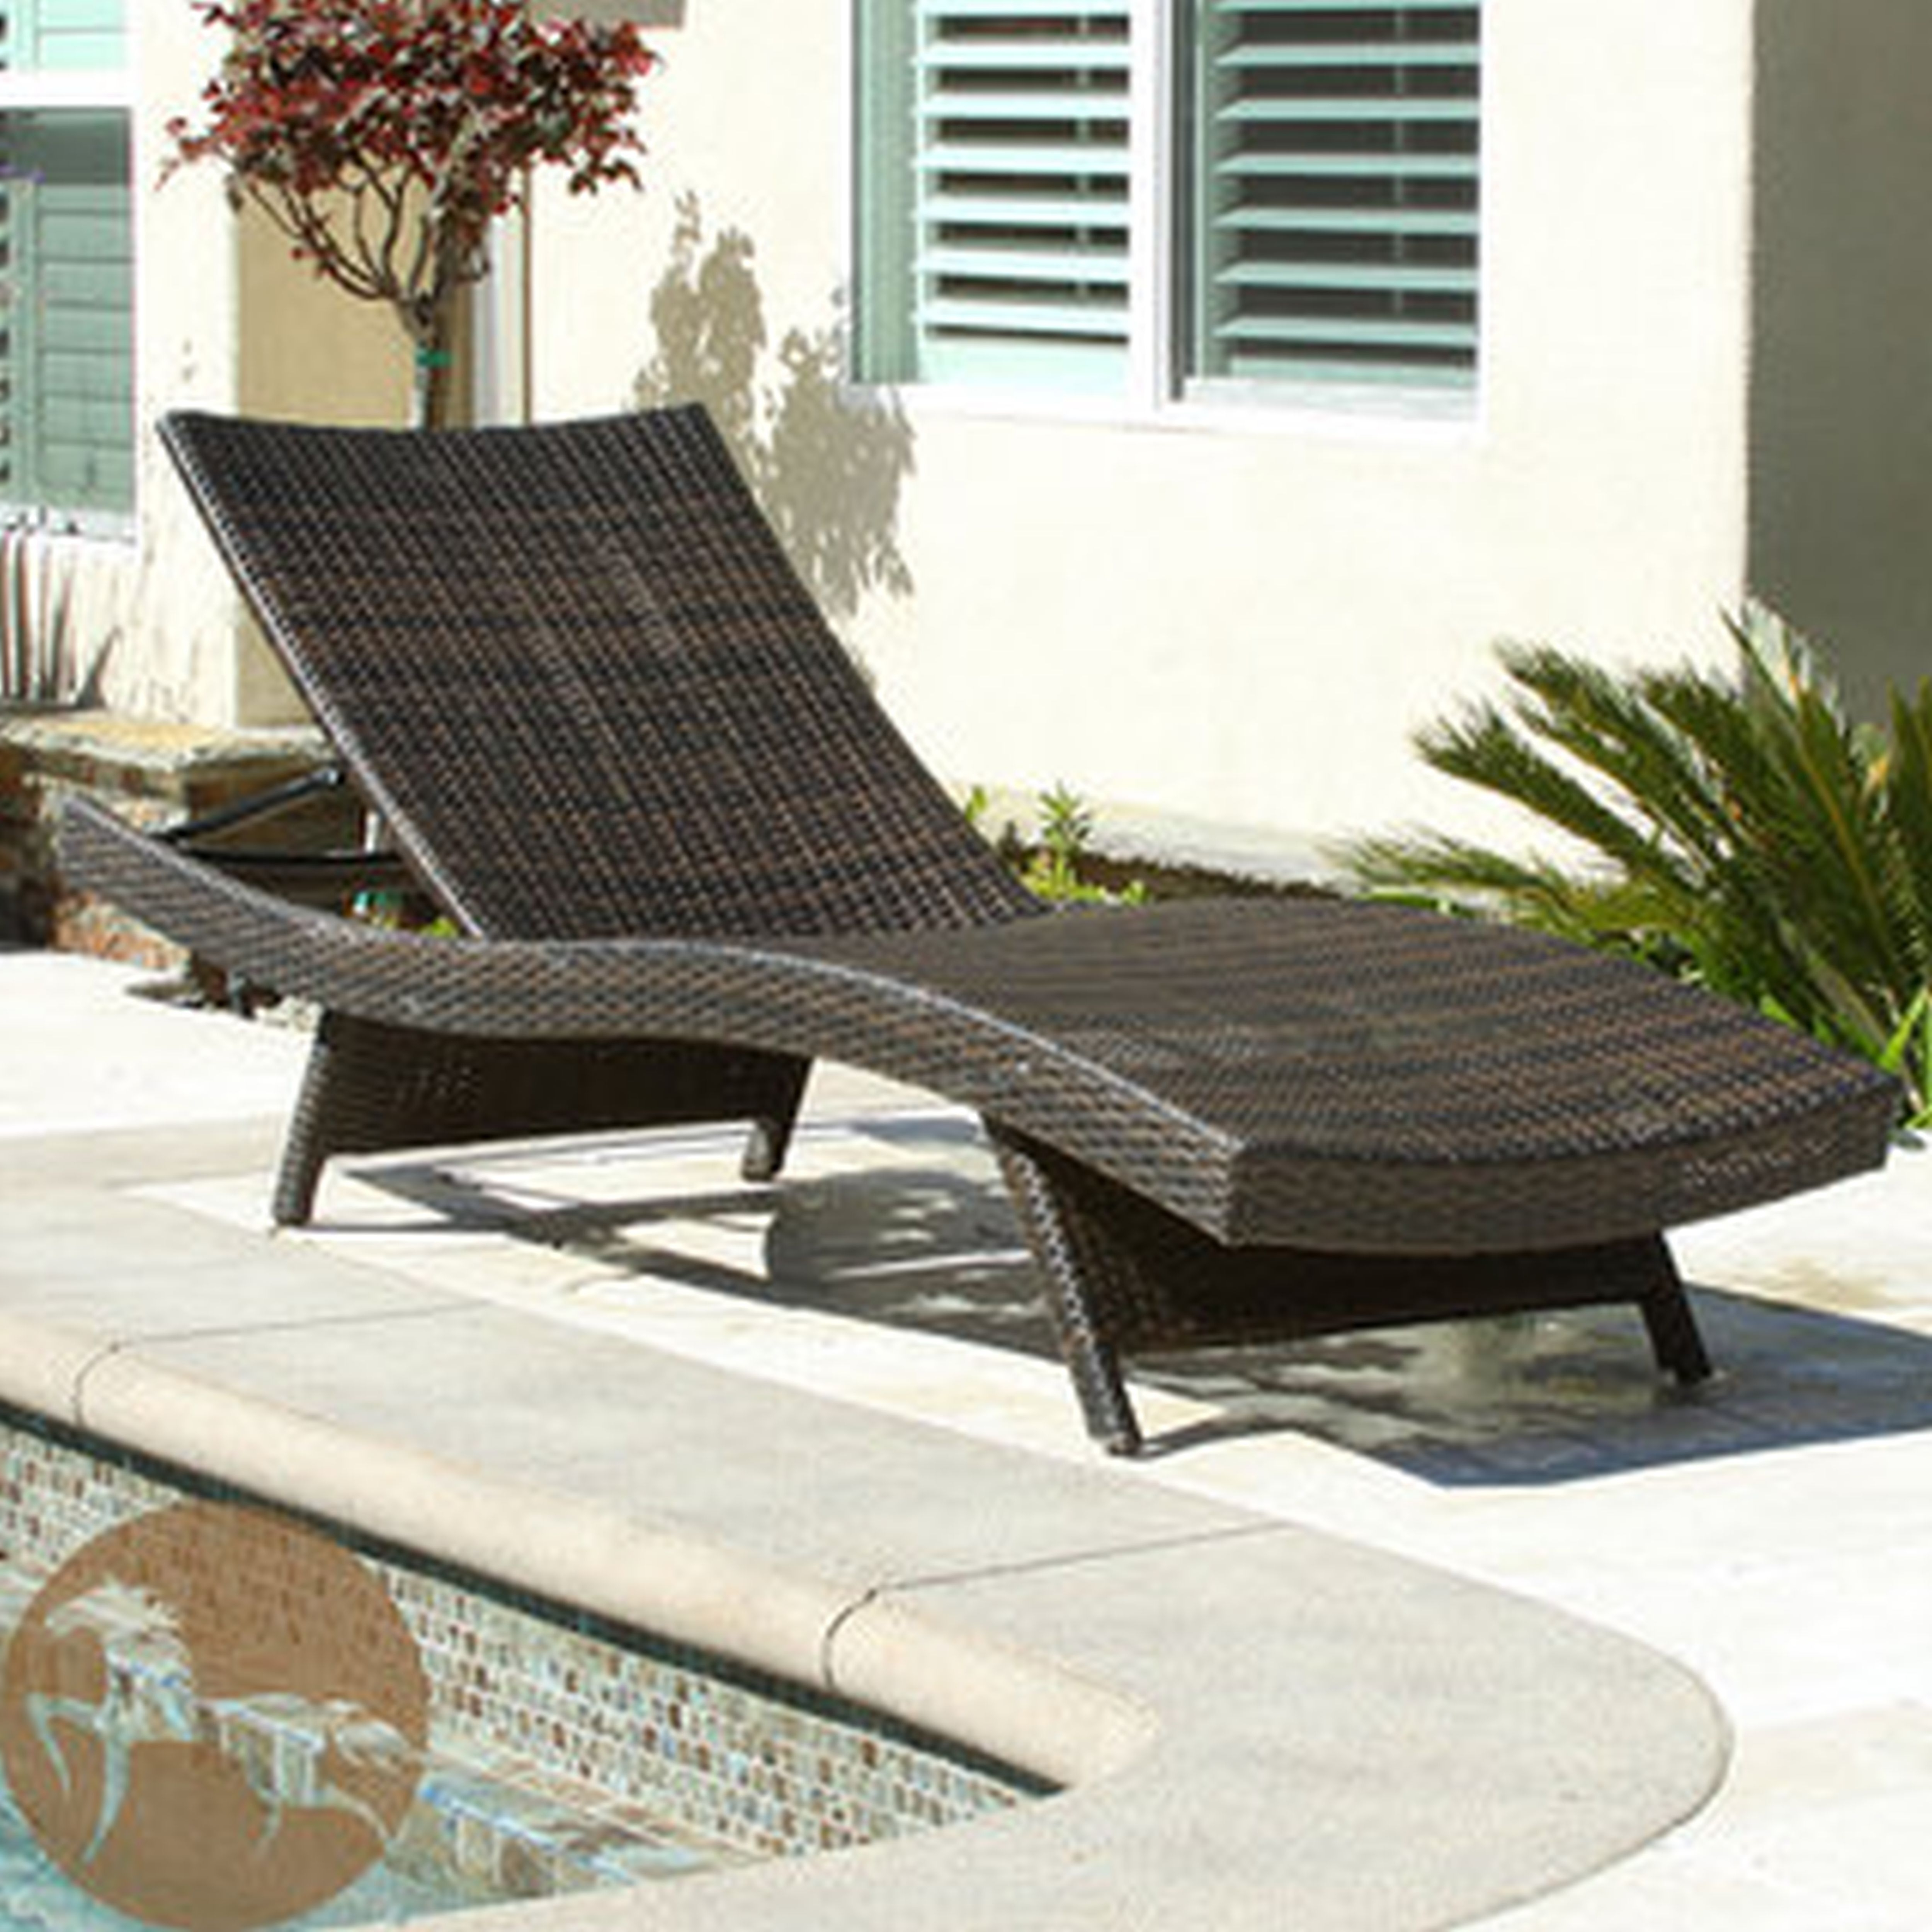 Outdoor : Chaise Lounge Sofa Lowes Patio Furniture Clearance With Most Current Chaise Lounge Chairs For Outdoor (View 2 of 15)